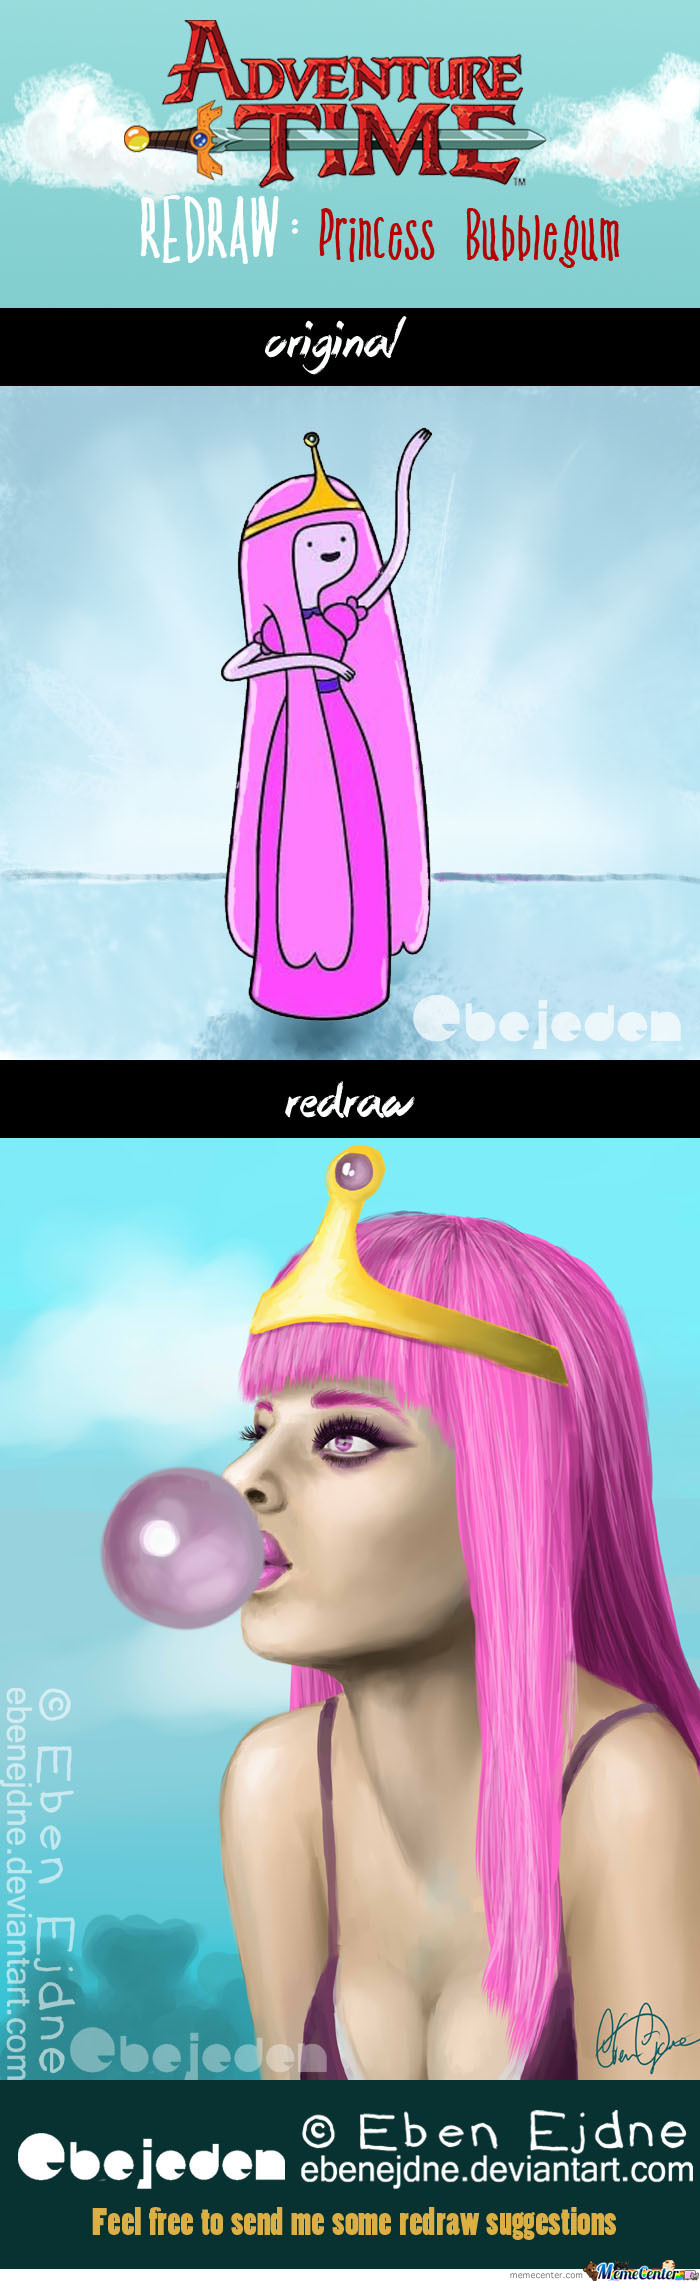 Redraw: Princess Bubblegum